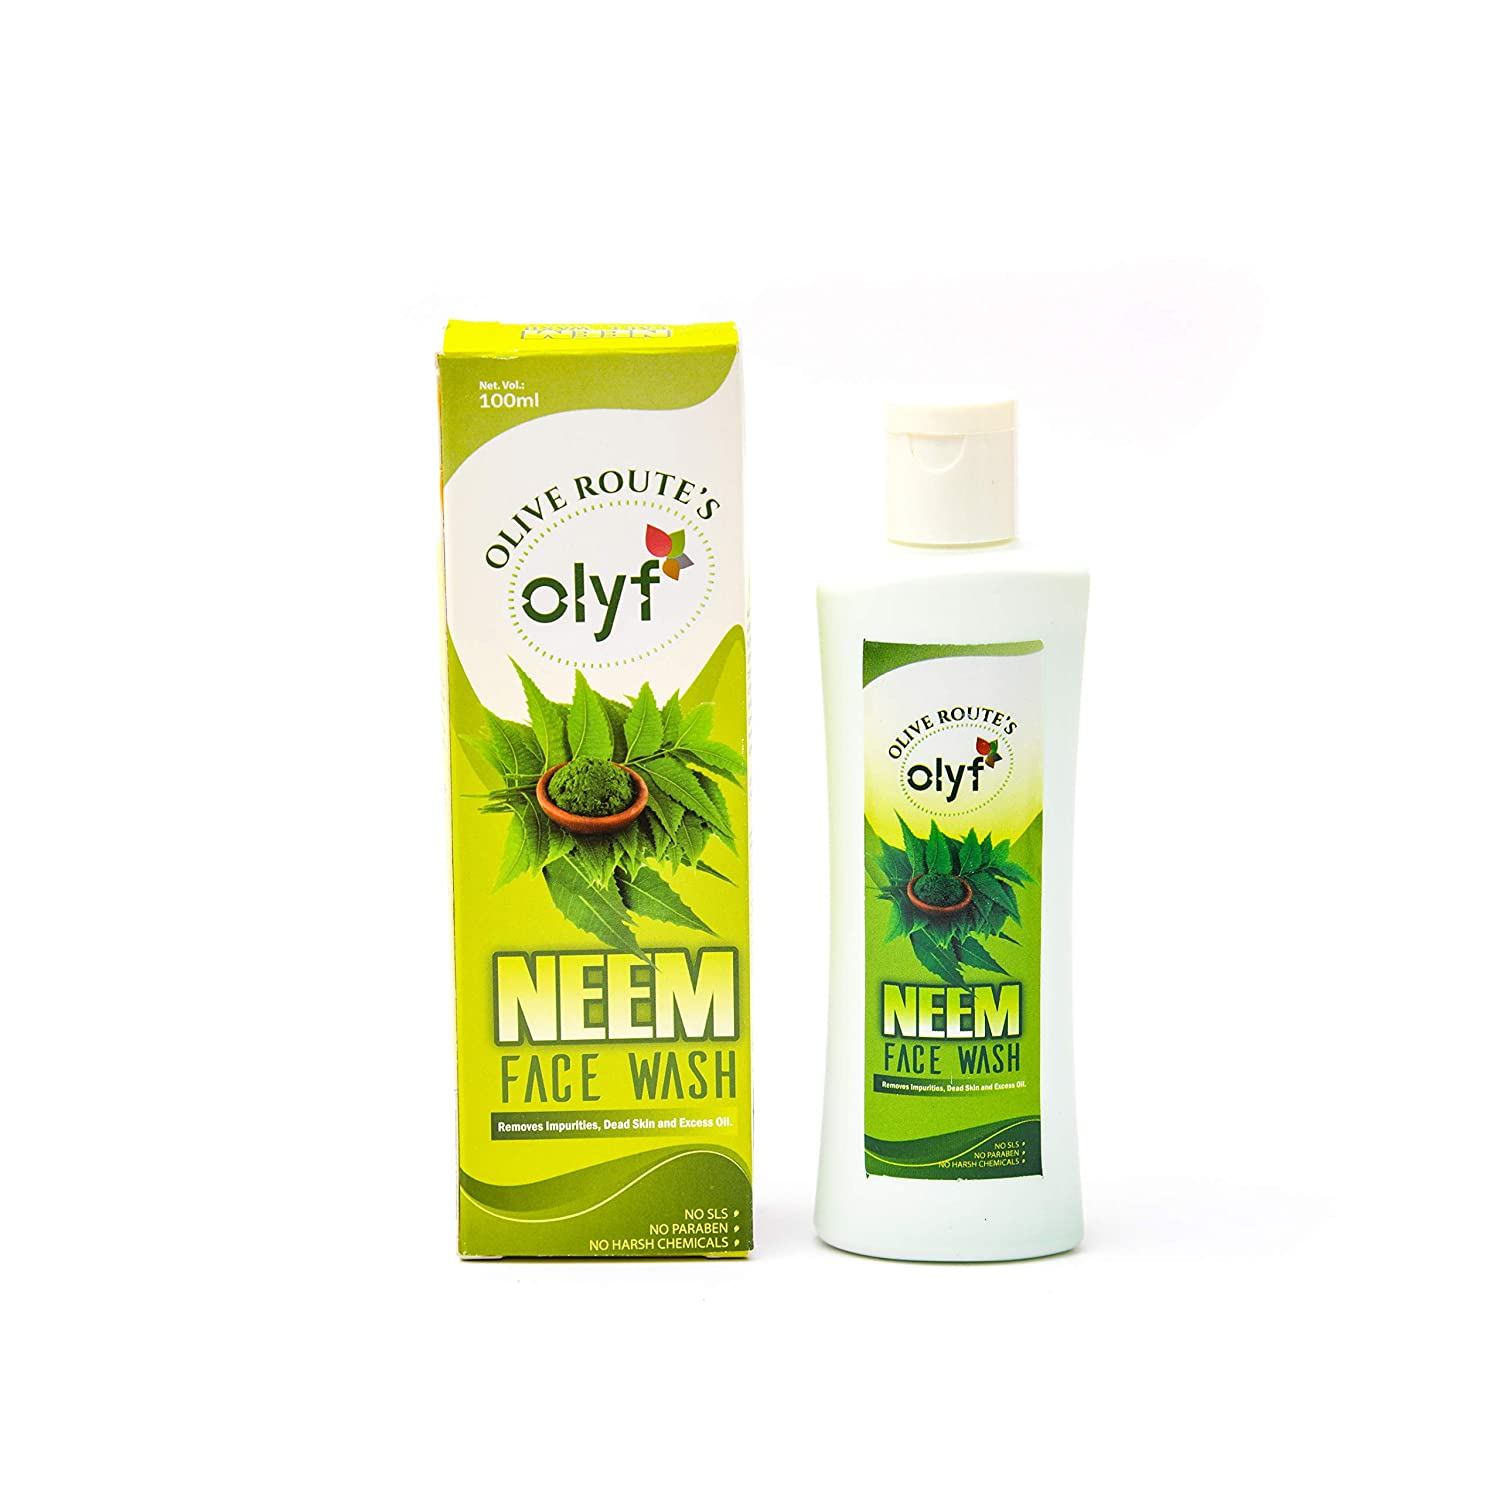 Olyf Neem Facewash, SLS and Paraben free, For all Skin Types, Halal Certified, 100ml